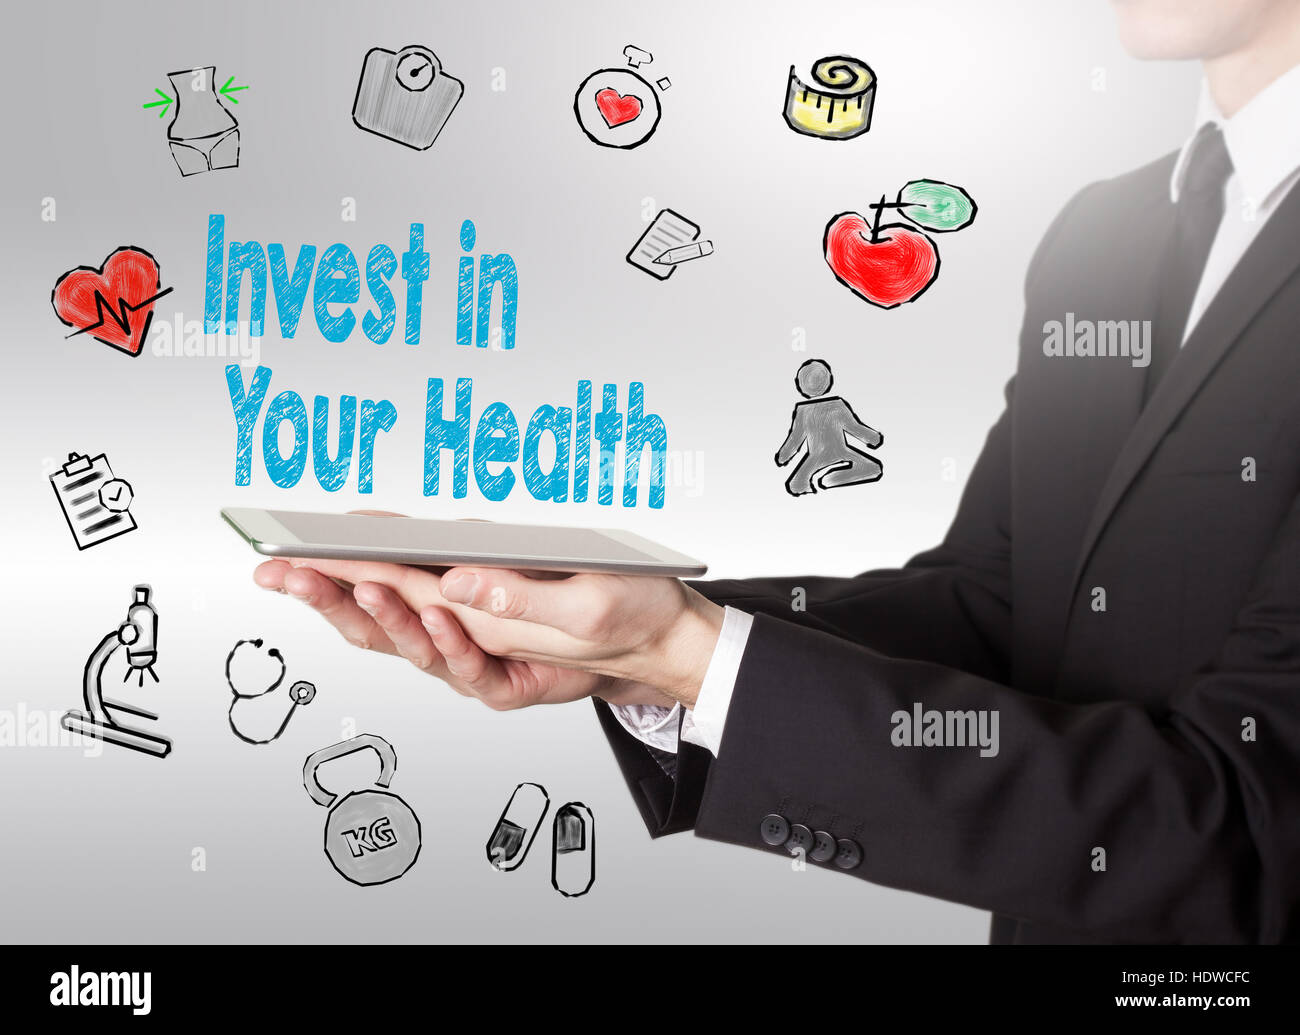 Invest in your health concept. Healty lifestyle background. Man holding a tablet computer. Stock Photo